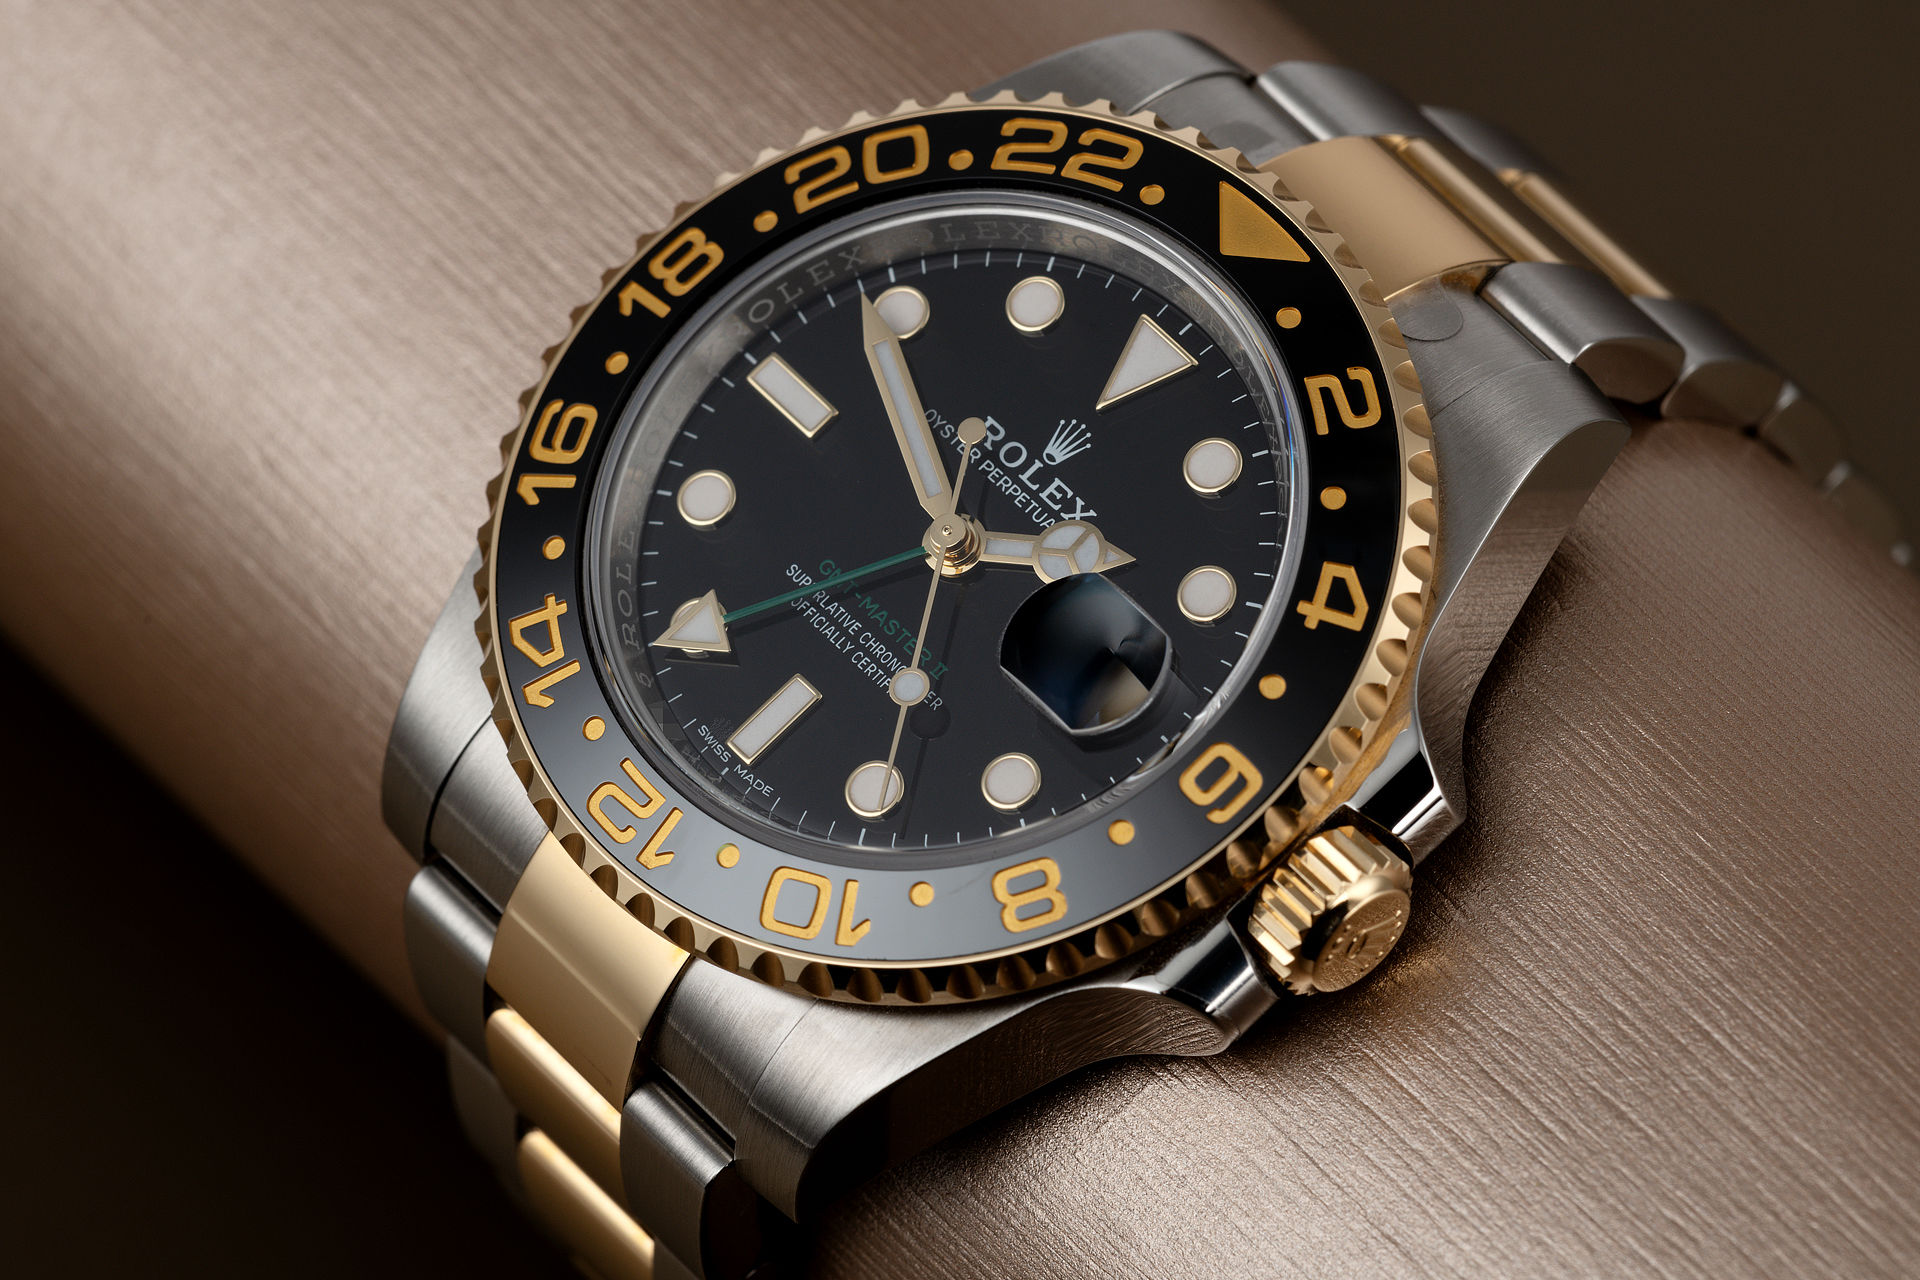 ref 116713LN | As New '5 Year Warranty' | Rolex GMT-Master II